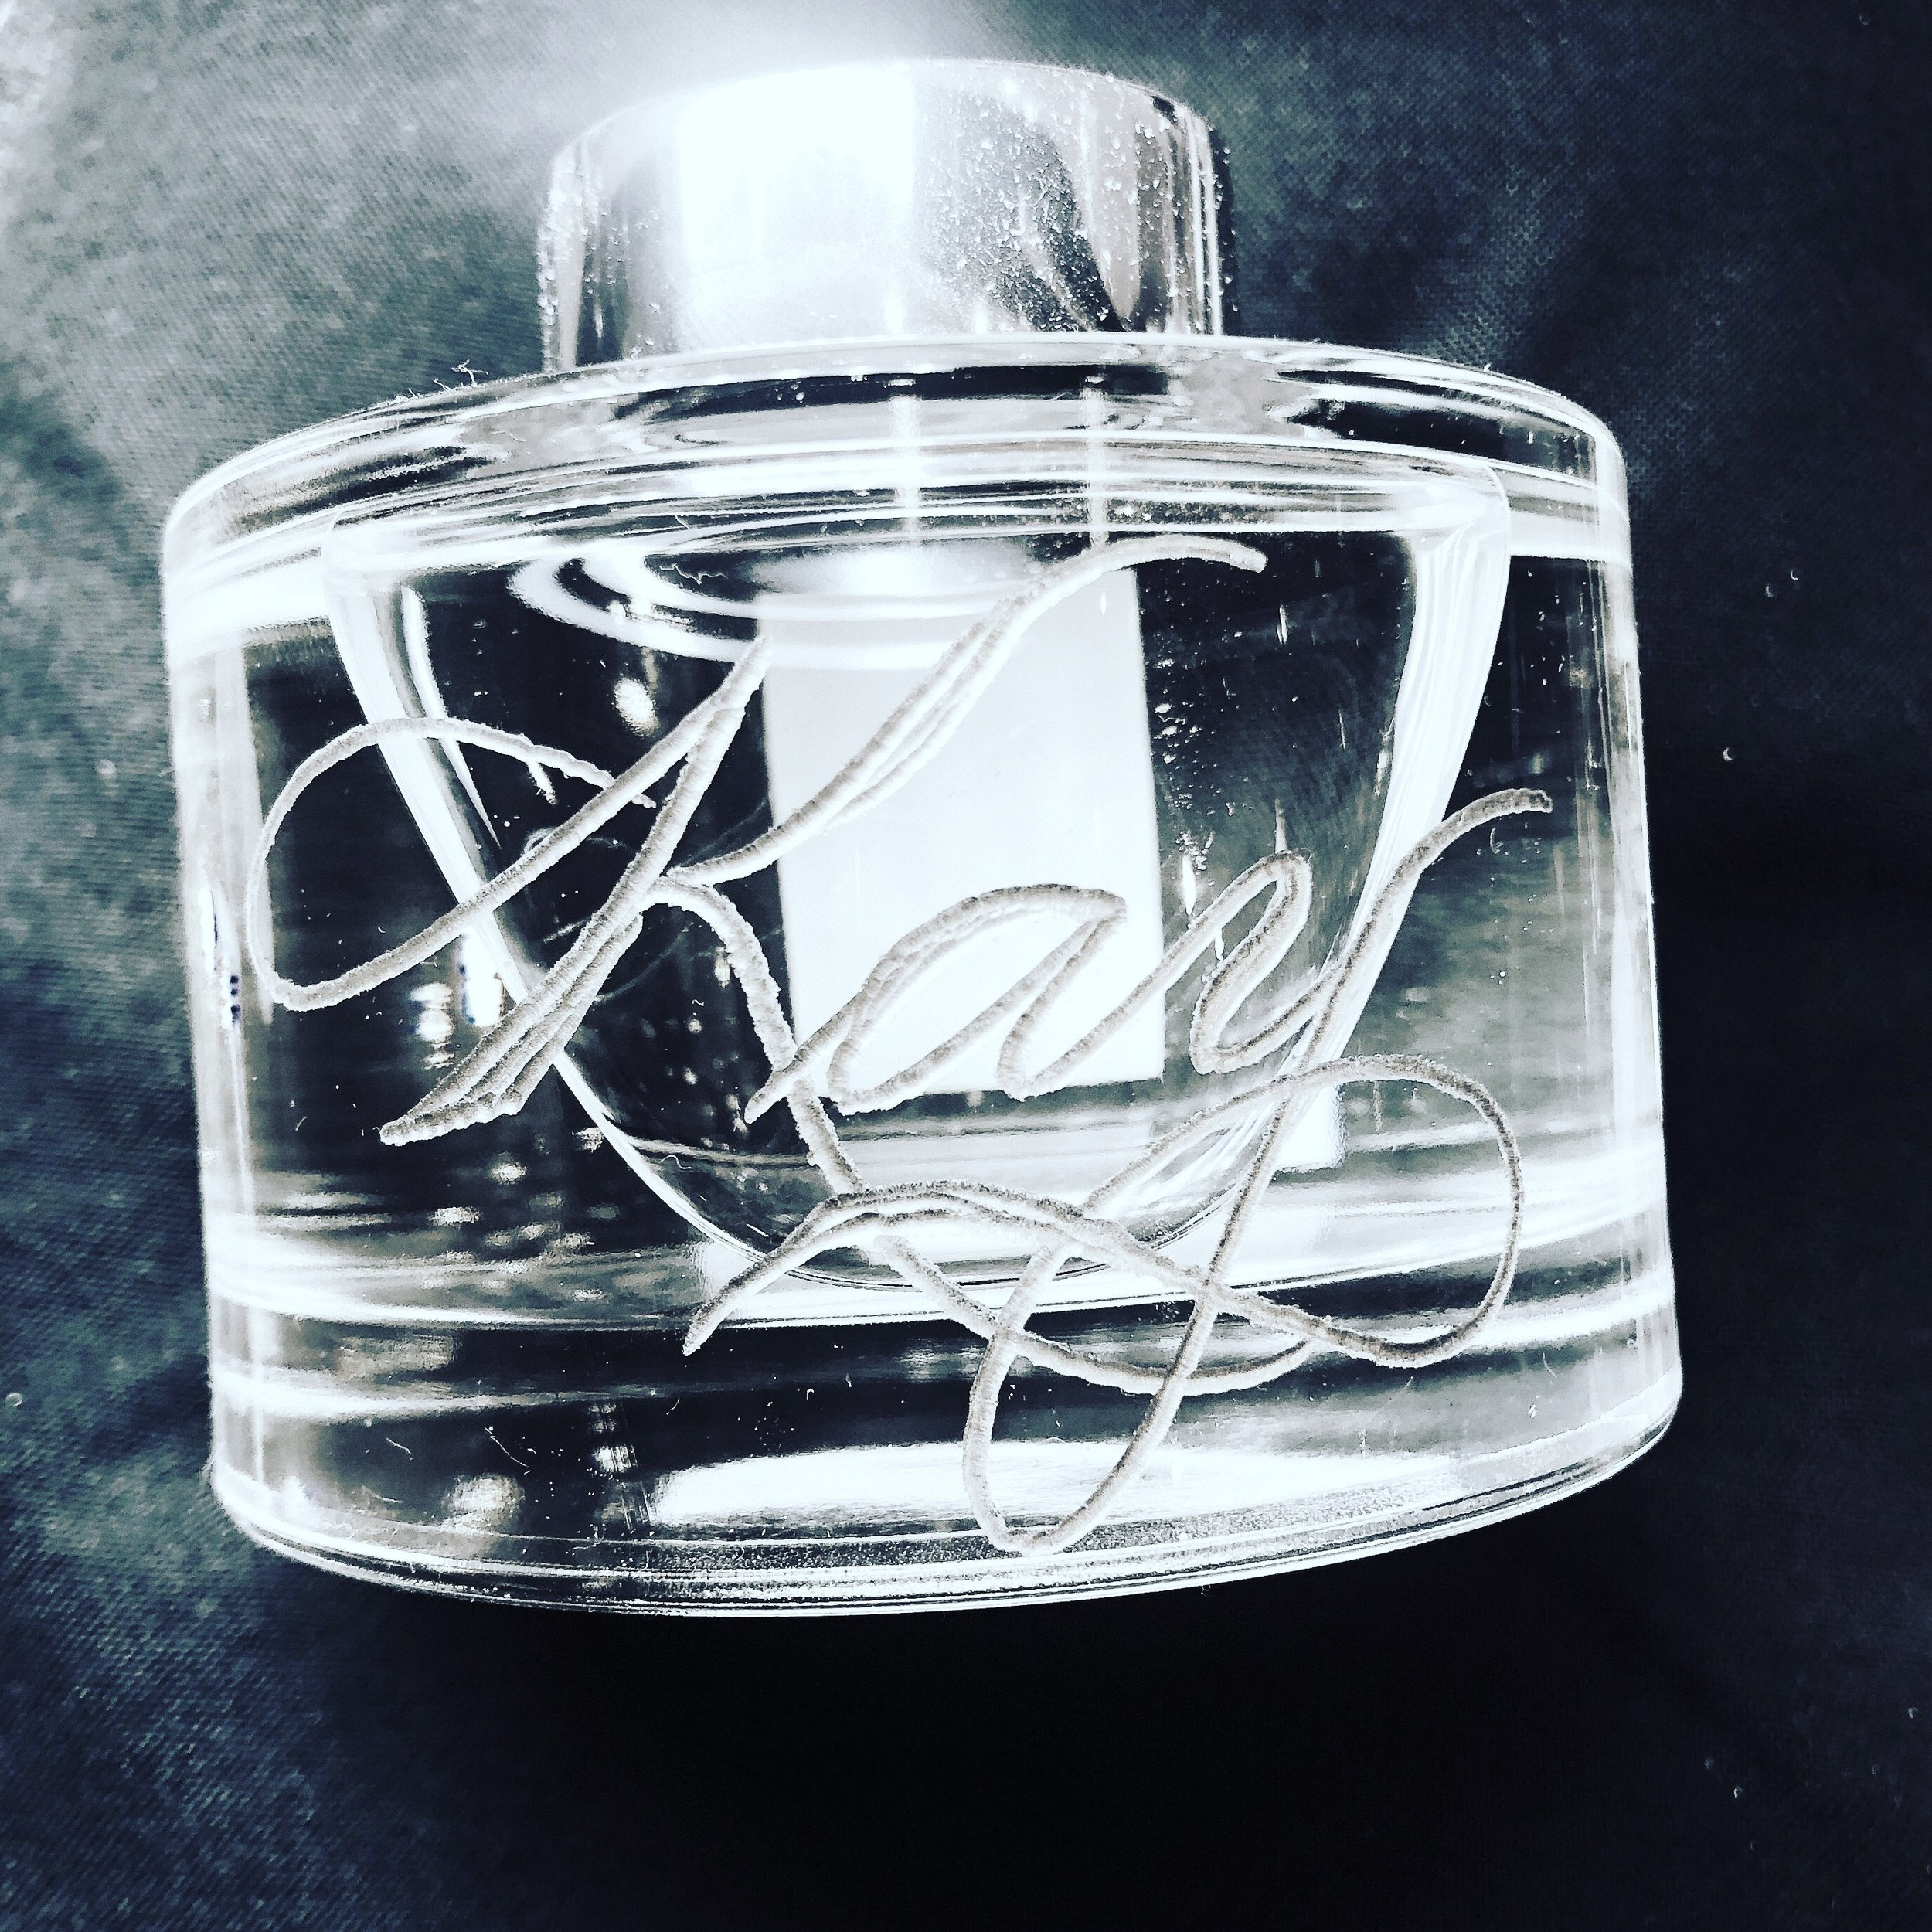 jo malone perfume fragrance engraving houston.JPG